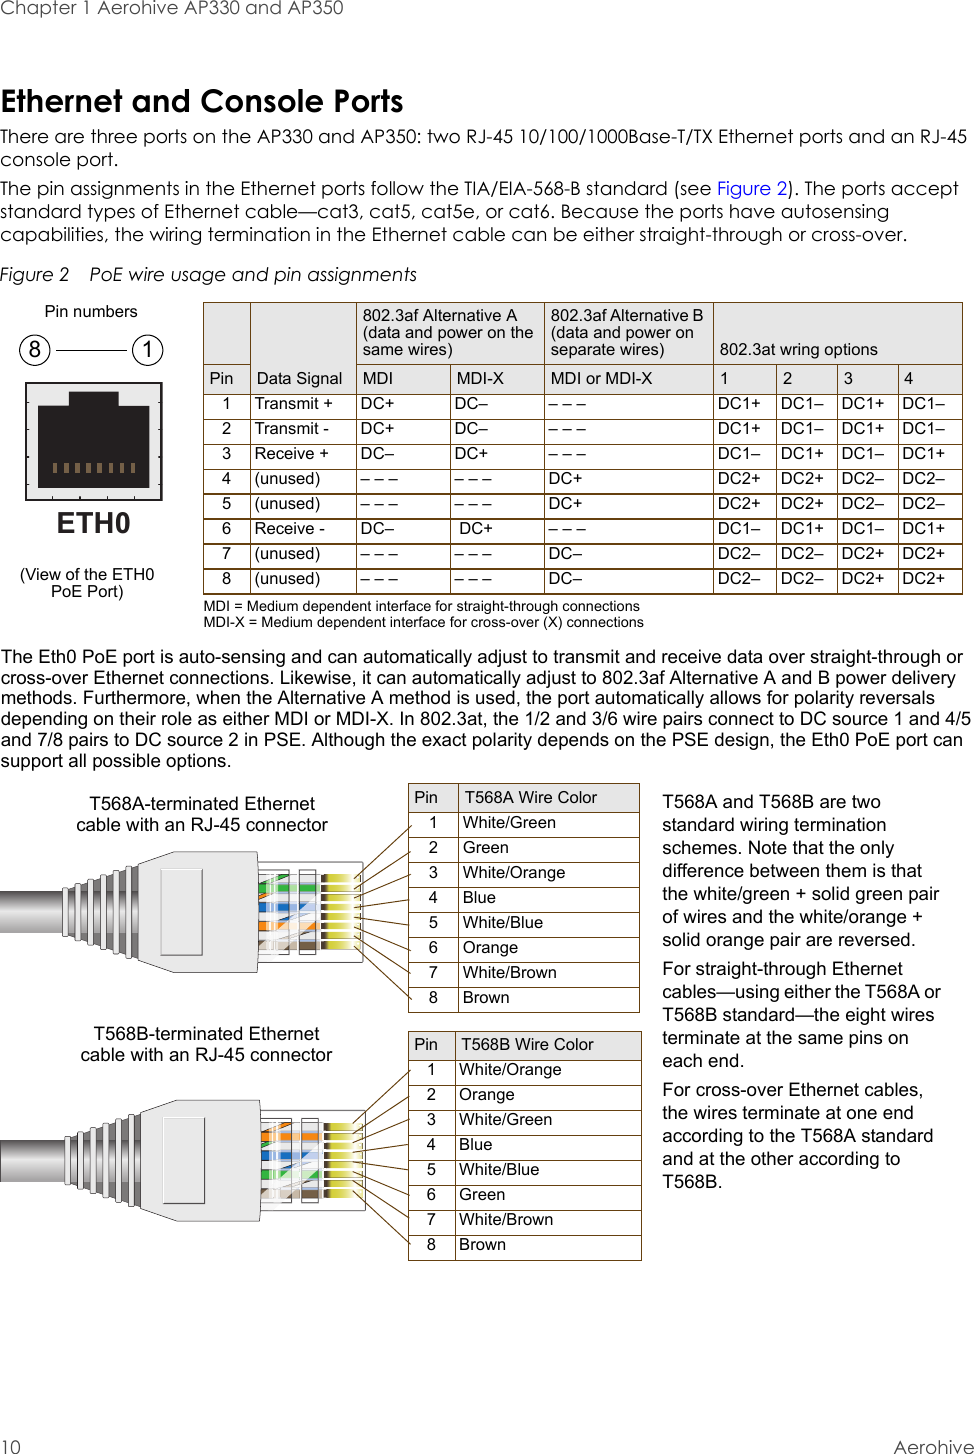 Chapter 1 Aerohive AP330 and AP35010 AerohiveEthernet and Console PortsThere are three ports on the AP330 and AP350: two RJ-45 10/100/1000Base-T/TX Ethernet ports and an RJ-45 console port.The pin assignments in the Ethernet ports follow the TIA/EIA-568-B standard (see Figure 2). The ports accept standard types of Ethernet cable—cat3, cat5, cat5e, or cat6. Because the ports have autosensing capabilities, the wiring termination in the Ethernet cable can be either straight-through or cross-over.Figure 2  PoE wire usage and pin assignmentsETH0Pin T568A Wire Color1 White/Green2 Green3 White/Orange4Blue5 White/Blue6 Orange7 White/Brown8Brown(View of the ETH0 PoE Port)8 1Pin numbersPin T568B Wire Color1 White/Orange2 Orange3 White/Green4Blue5 White/Blue6 Green7 White/Brown8BrownT568A-terminated Ethernet cable with an RJ-45 connectorData Signal802.3af Alternative A (data and power on the same wires)802.3af Alternative B (data and power on separate wires) 802.3at wring optionsPin MDI MDI-X MDI or MDI-X 1 2 3 41 Transmit + DC+ DC– – – – DC1+ DC1– DC1+ DC1–2 Transmit - DC+ DC– – – – DC1+ DC1– DC1+ DC1–3 Receive + DC– DC+ – – – DC1– DC1+ DC1– DC1+4 (unused) – – – – – – DC+ DC2+ DC2+ DC2– DC2–5 (unused) – – – – – – DC+ DC2+ DC2+ DC2– DC2–6 Receive - DC–  DC+ – – – DC1– DC1+ DC1– DC1+7 (unused) – – – – – – DC– DC2– DC2– DC2+ DC2+8 (unused) – – – – – – DC– DC2– DC2– DC2+ DC2+MDI = Medium dependent interface for straight-through connectionsMDI-X = Medium dependent interface for cross-over (X) connectionsThe Eth0 PoE port is auto-sensing and can automatically adjust to transmit and receive data over straight-through or cross-over Ethernet connections. Likewise, it can automatically adjust to 802.3af Alternative A and B power delivery methods. Furthermore, when the Alternative A method is used, the port automatically allows for polarity reversals depending on their role as either MDI or MDI-X. In 802.3at, the 1/2 and 3/6 wire pairs connect to DC source 1 and 4/5 and 7/8 pairs to DC source 2 in PSE. Although the exact polarity depends on the PSE design, the Eth0 PoE port can support all possible options.T568B-terminated Ethernet cable with an RJ-45 connectorT568A and T568B are two standard wiring termination schemes. Note that the only difference between them is that the white/green + solid green pair of wires and the white/orange + solid orange pair are reversed.For straight-through Ethernet cables—using either the T568A or T568B standard—the eight wires terminate at the same pins on each end.For cross-over Ethernet cables, the wires terminate at one end according to the T568A standard and at the other according to T568B.